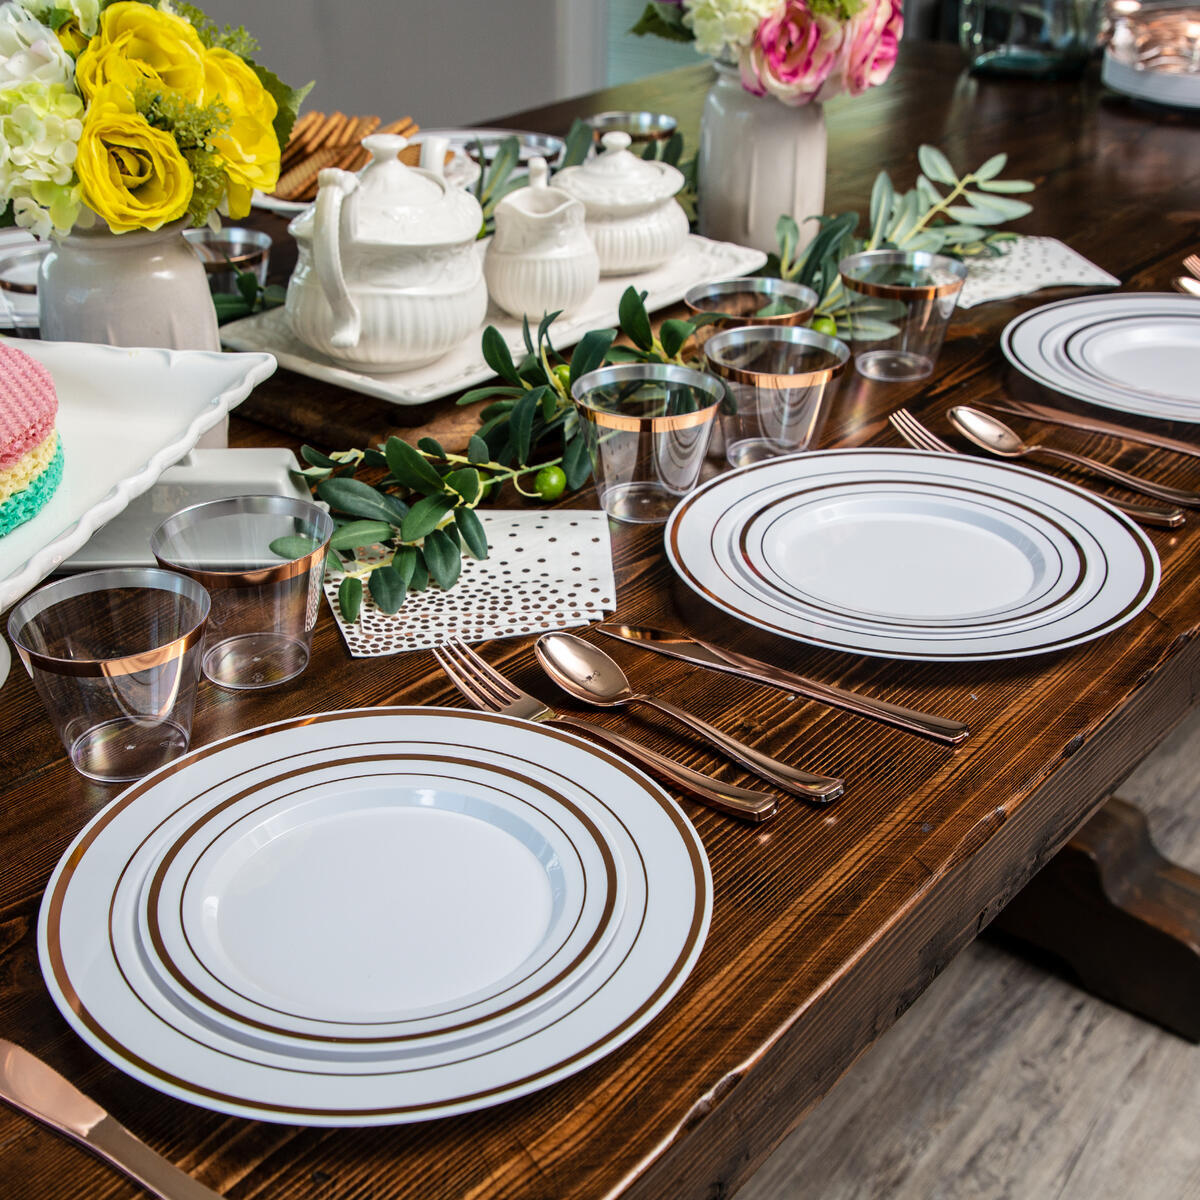 *On SALE* Elegant ROSE GOLD Disposable Dinnerware Set for 26 Guests 156 Pieces (eBay)